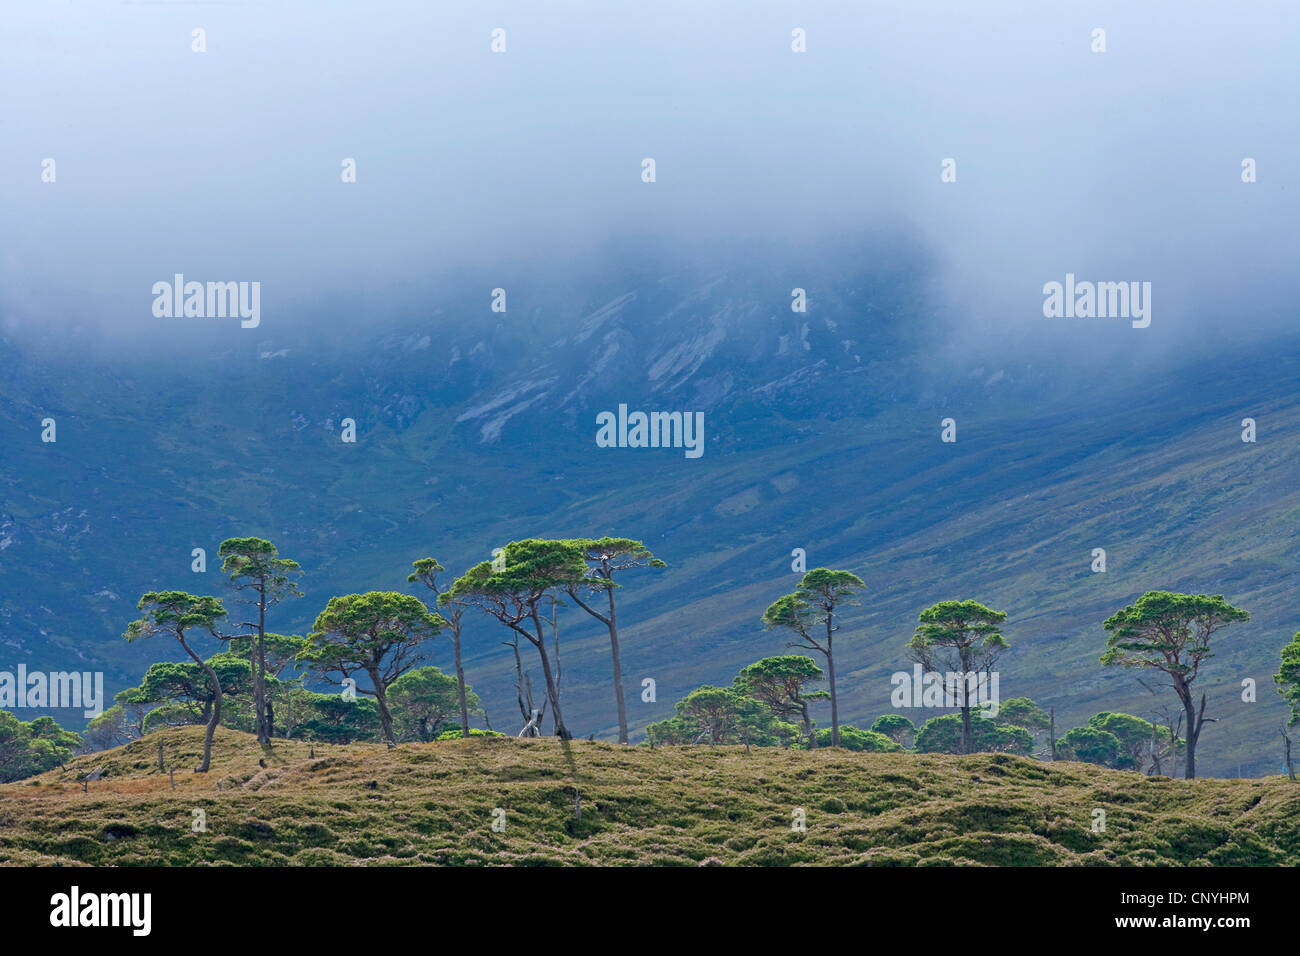 remnant tract of the Caledonian pine woodland in front of looming mountain, United Kingdom, Scotland, Alladale Wilderness - Stock Image